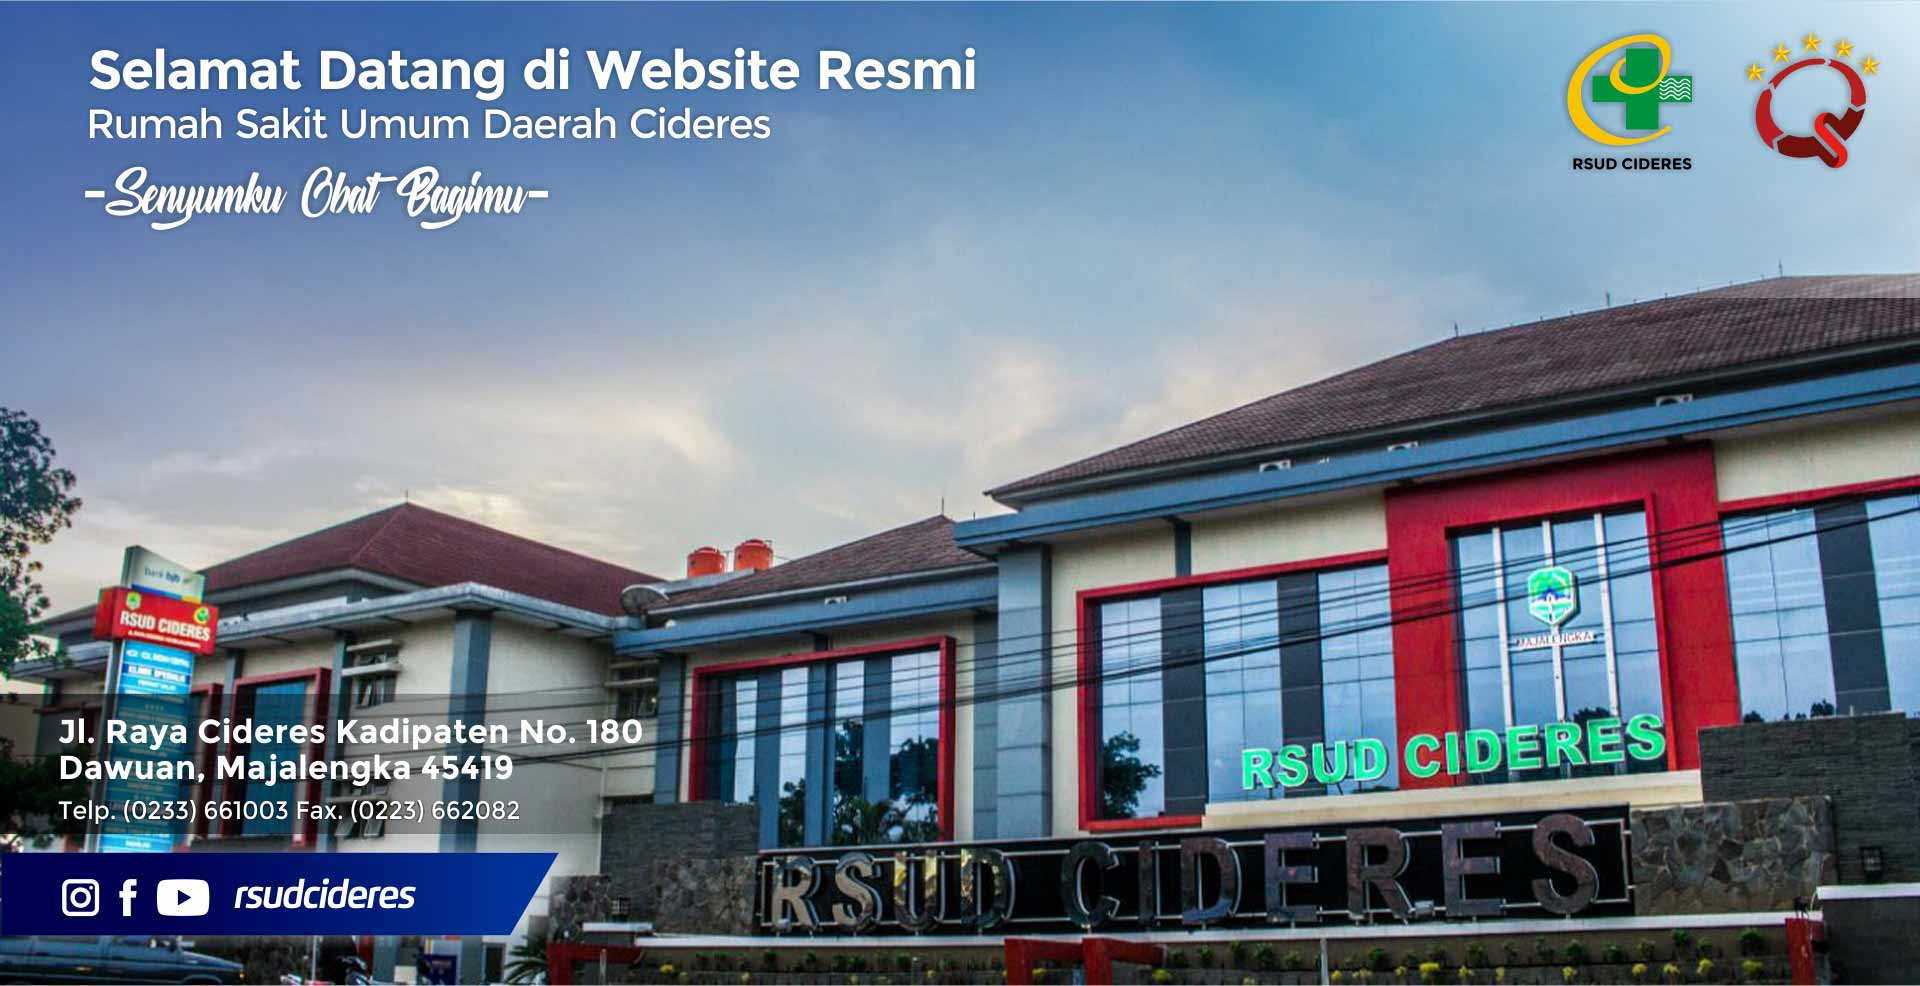 rsud cideres